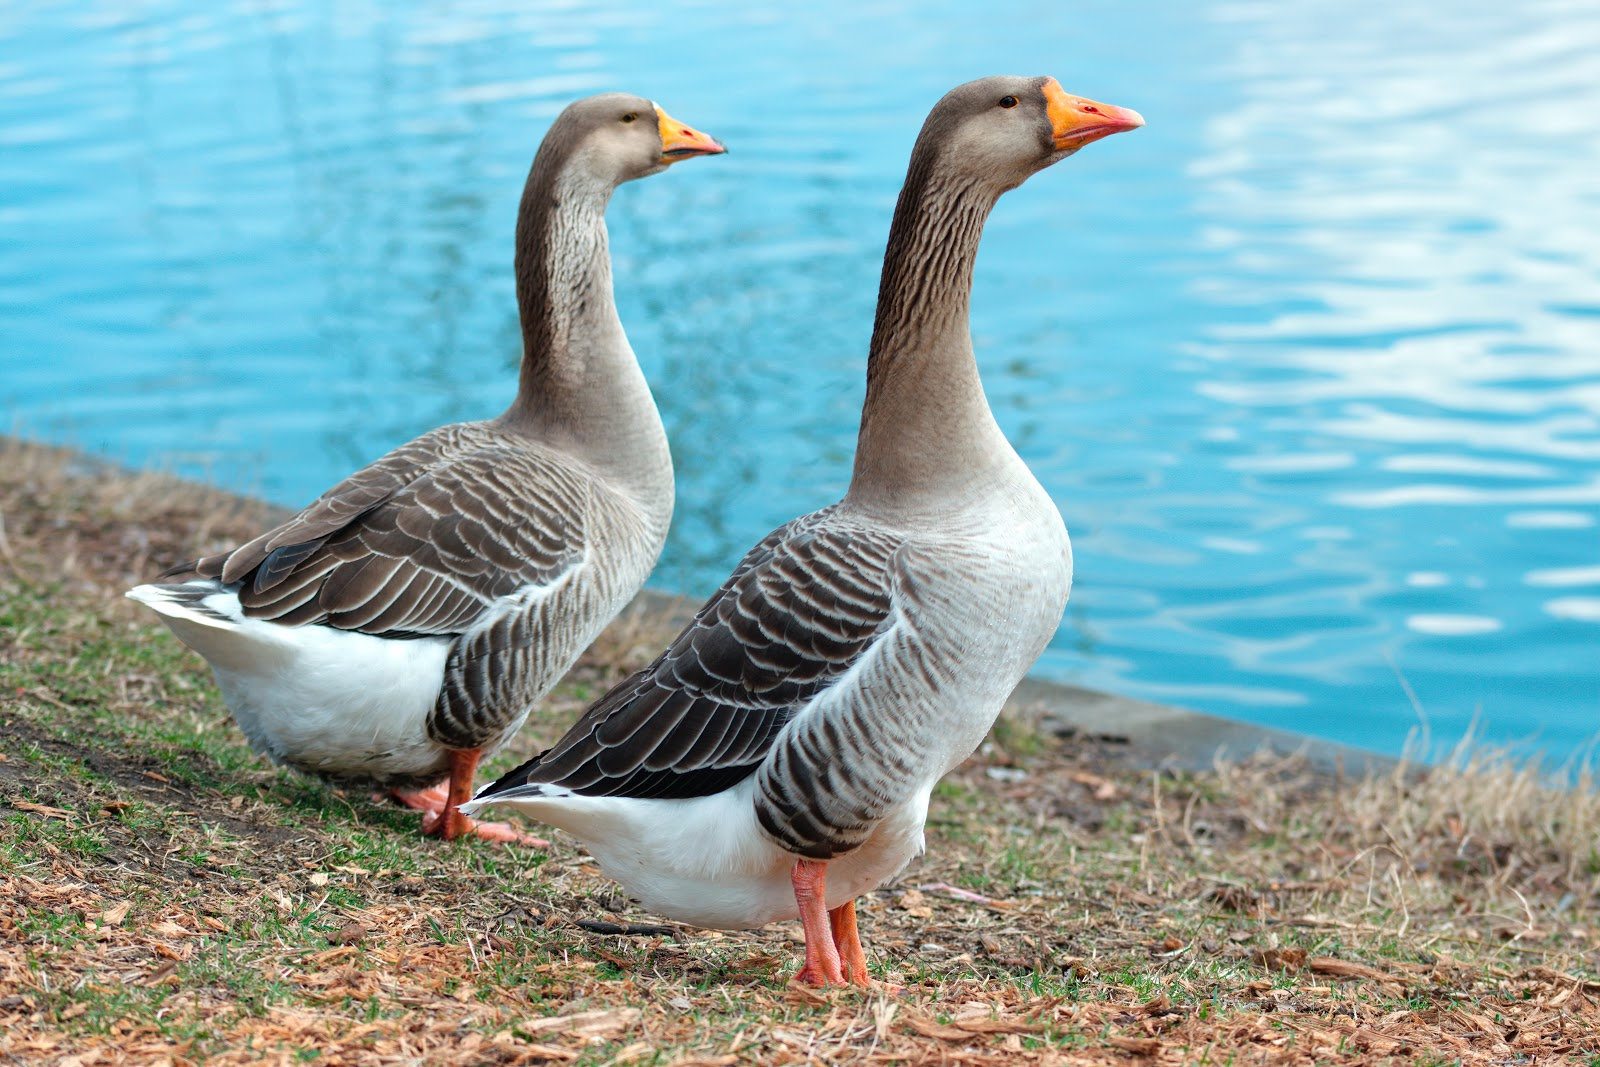 geese-near-body-of-water-birds-pictures